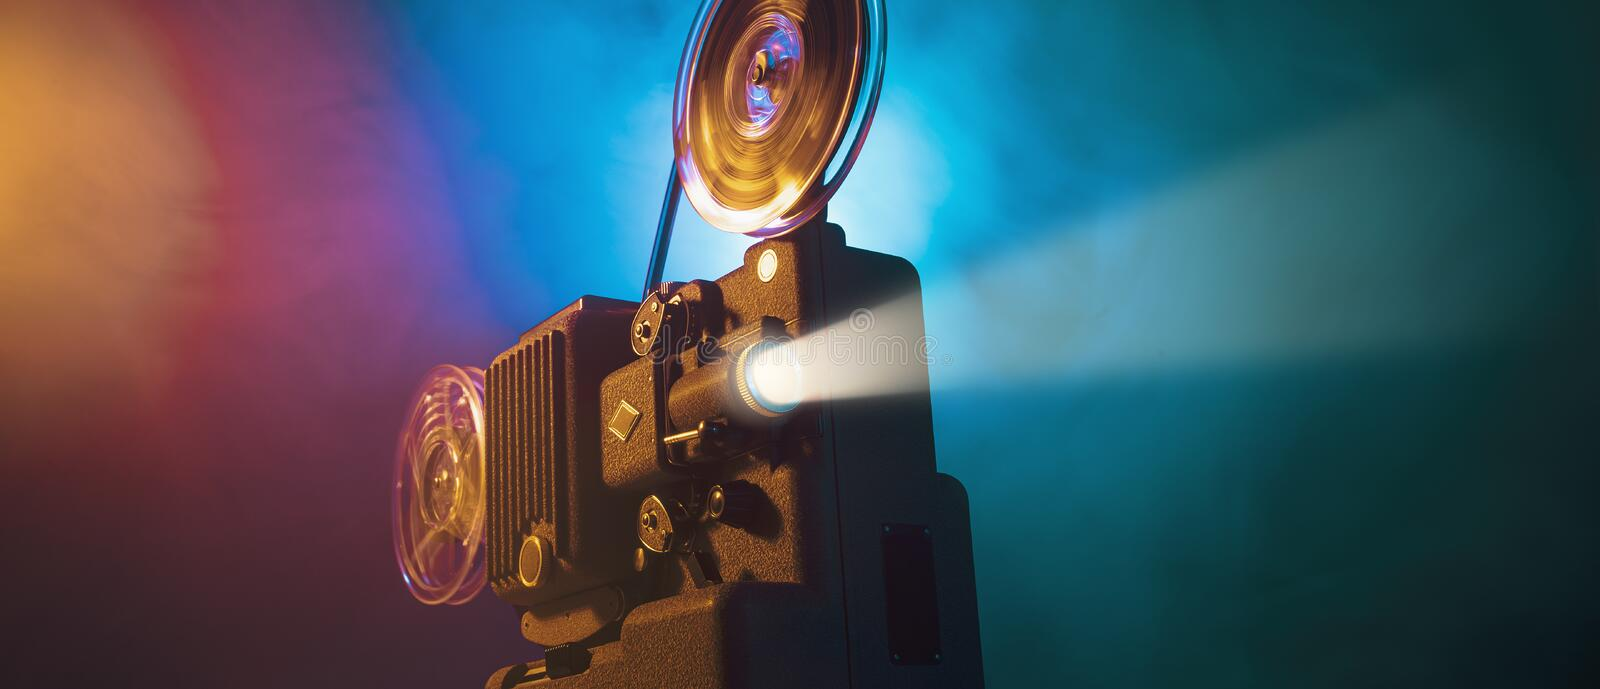 Vintage film projector and film screening. Vintage old fashioned projector in a dark room projecting a film, cinematography concept stock images